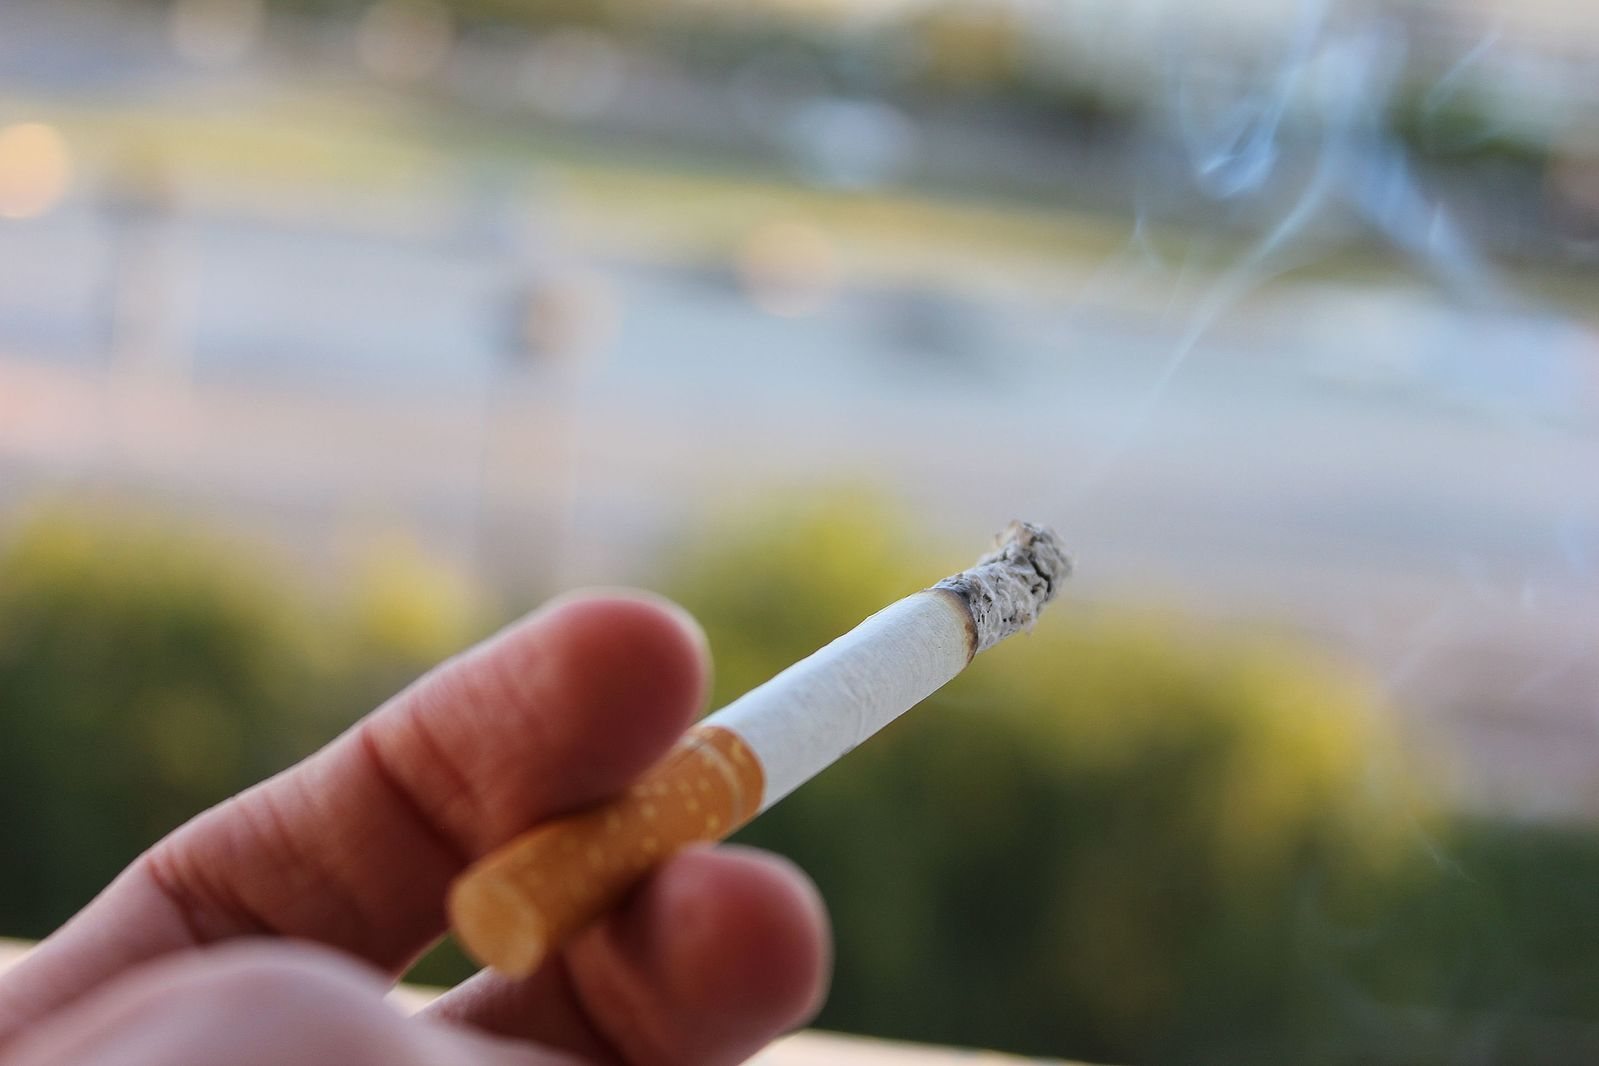 The Manc Asked: Should smoking be banned outside pubs/restaurants?, The Manc